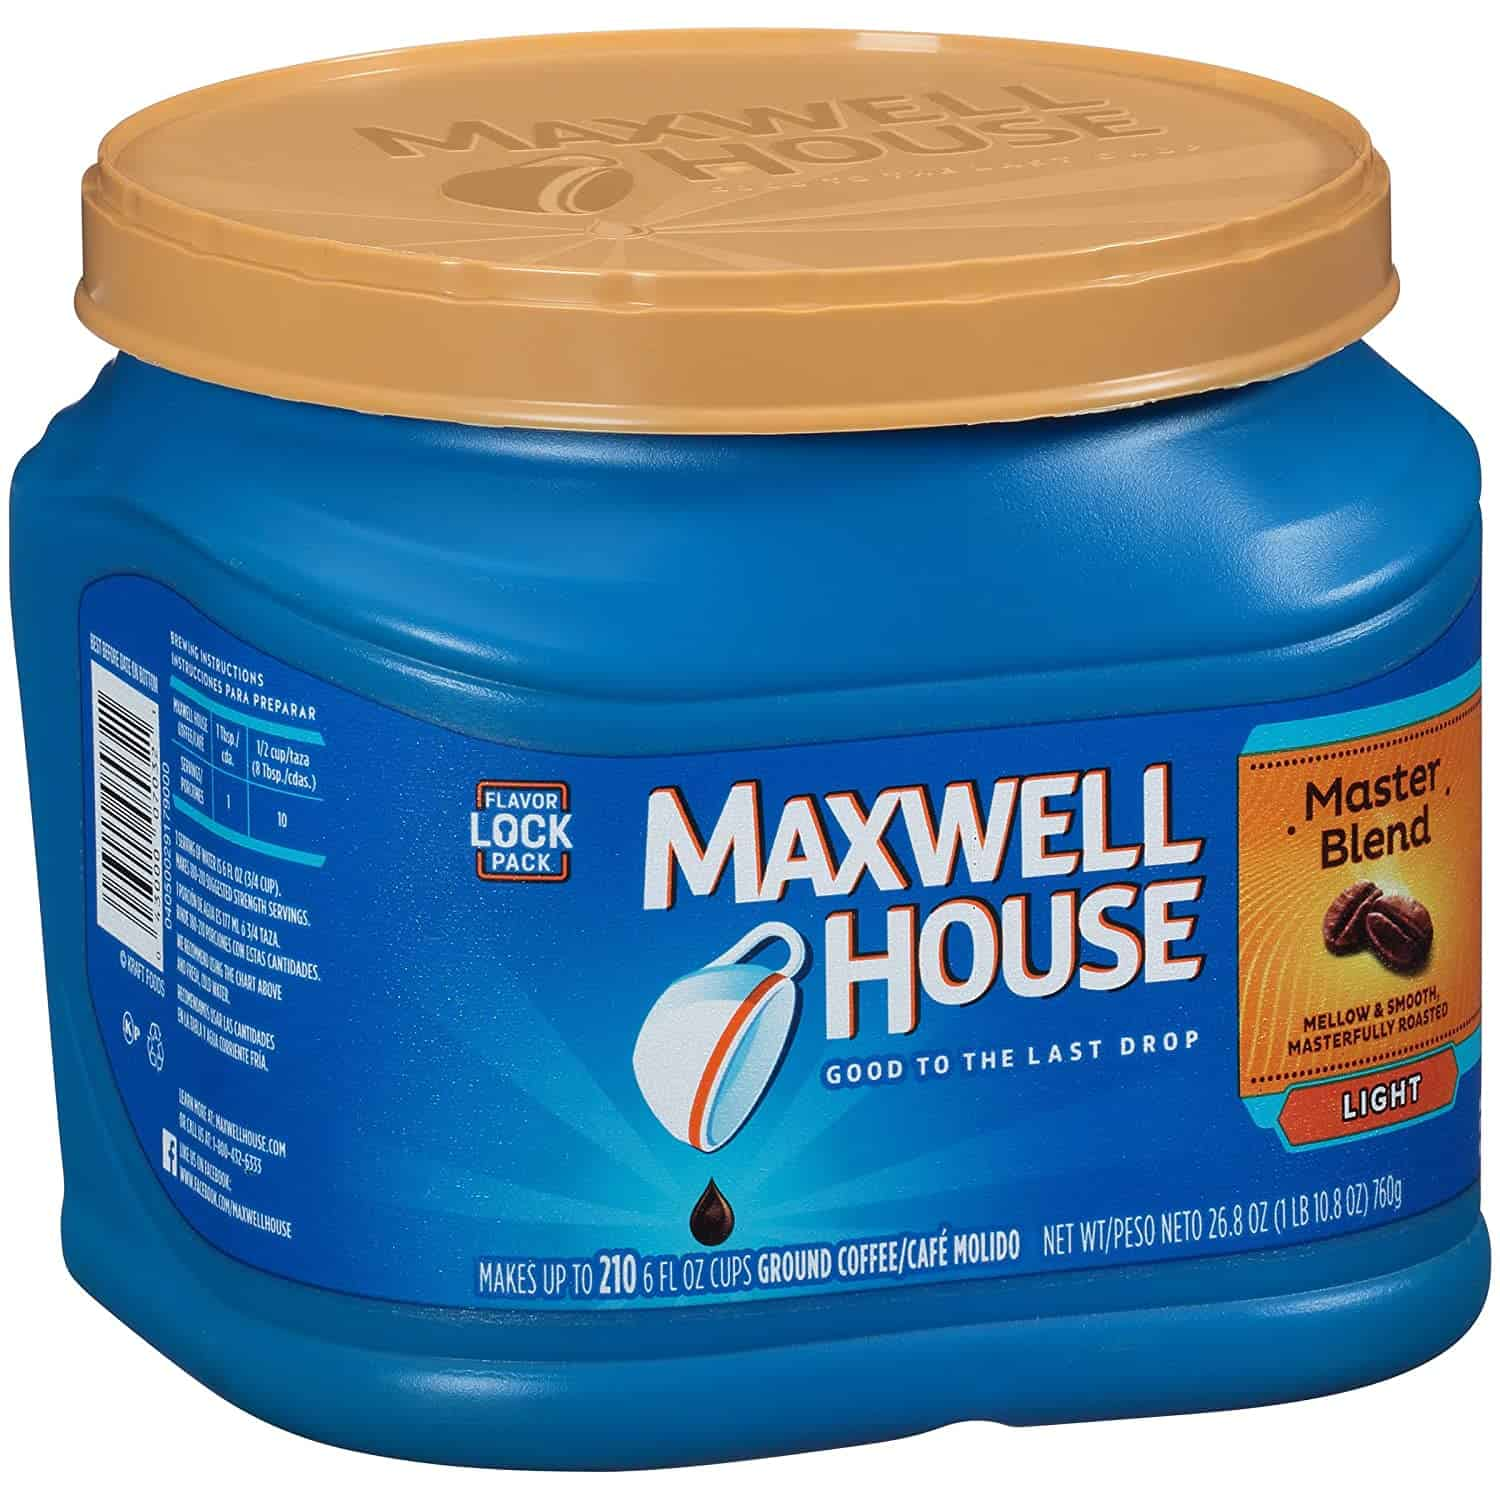 Maxwell House Master Blend light roast